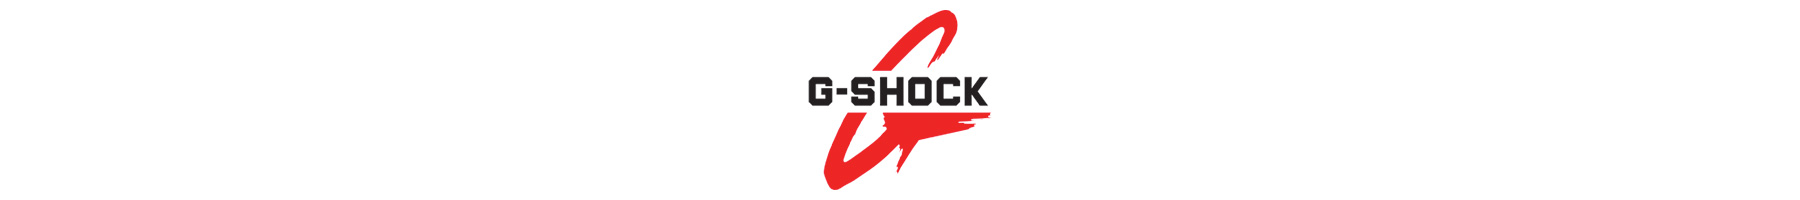 DrJays.com - G-Shock Watches